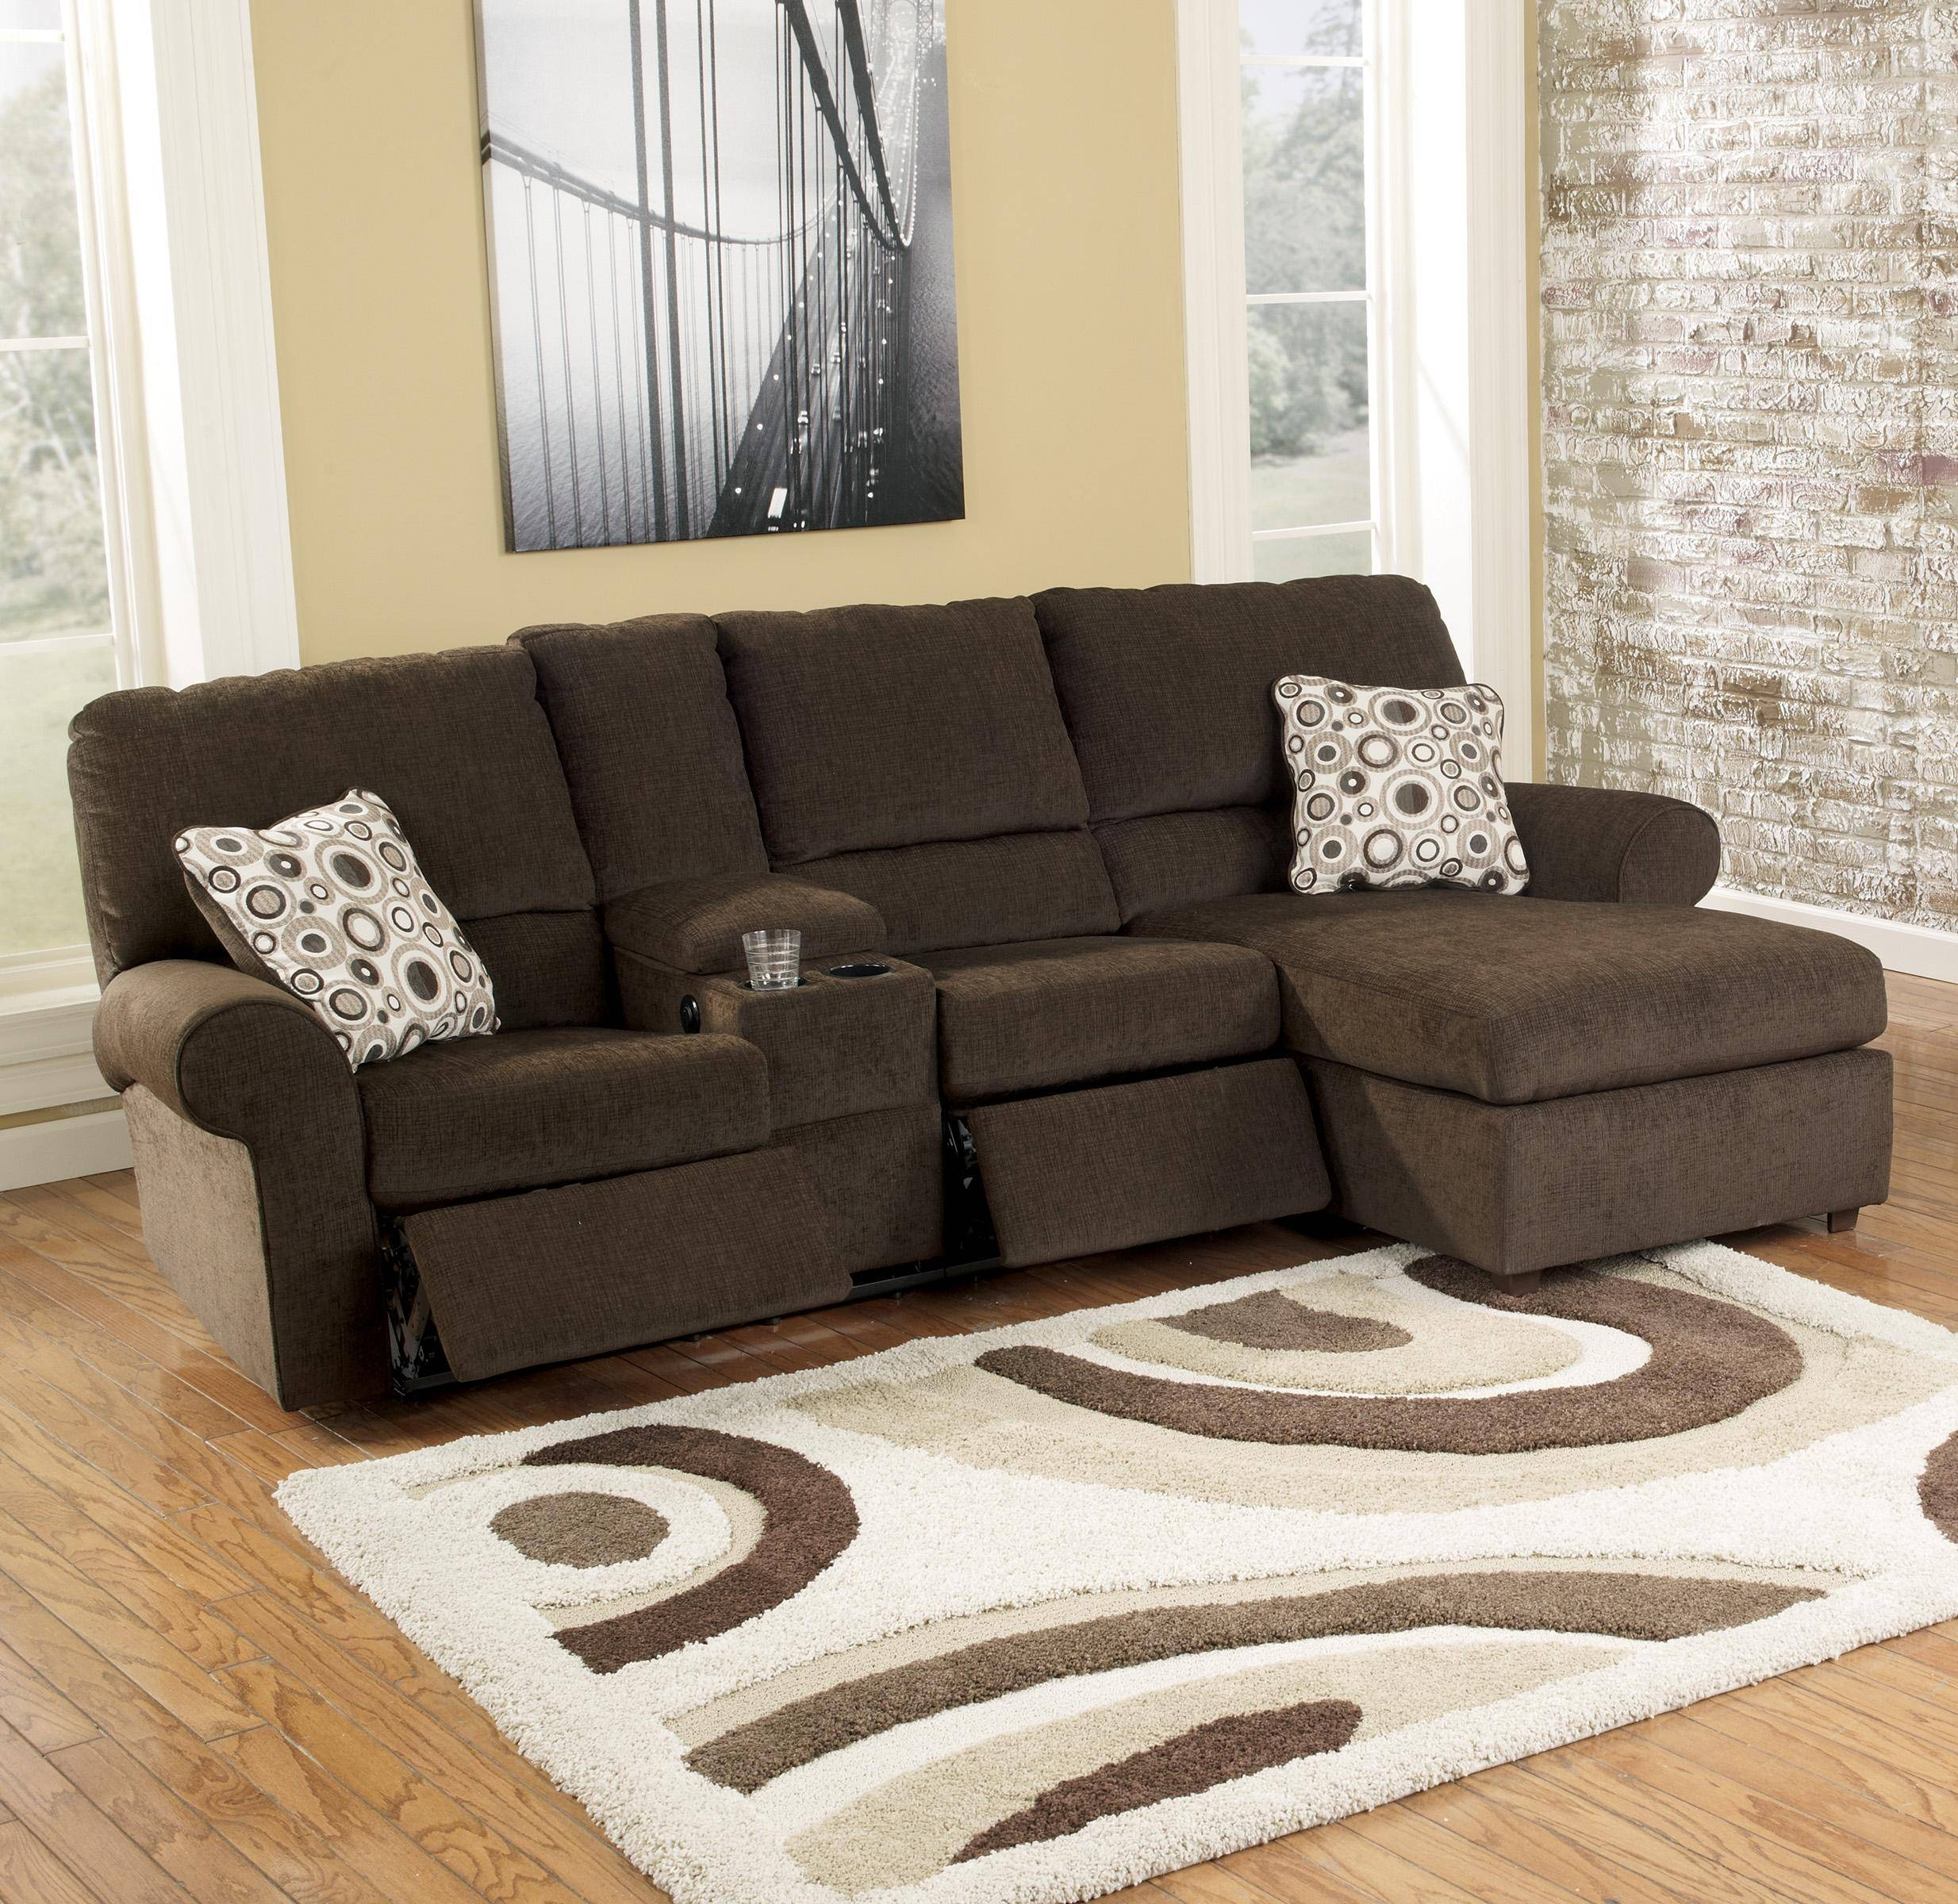 Amazing Sectional Sofa With Chaise Recliner And Sleeper 84 For 3 With 3 Piece Sectional Sleeper Sofa (View 8 of 30)